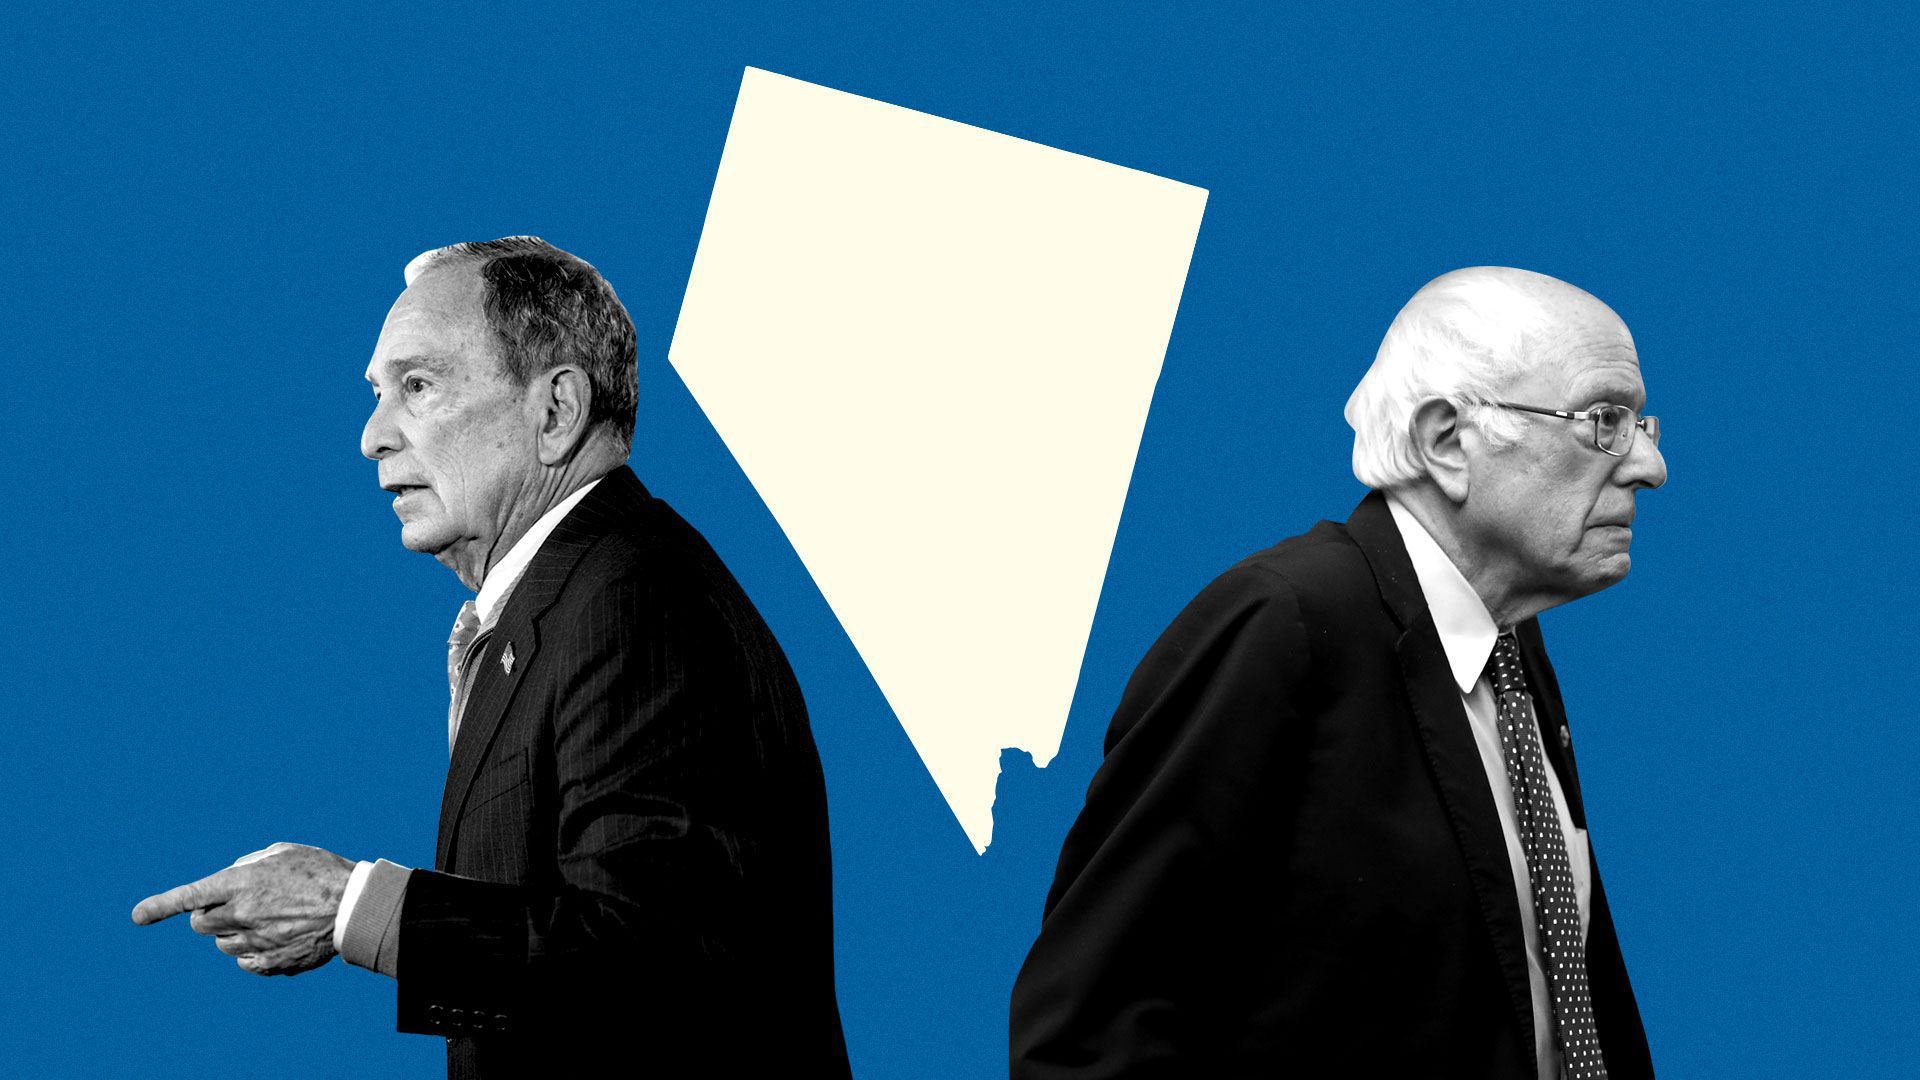 What to watch in the Nevada debate - Axios